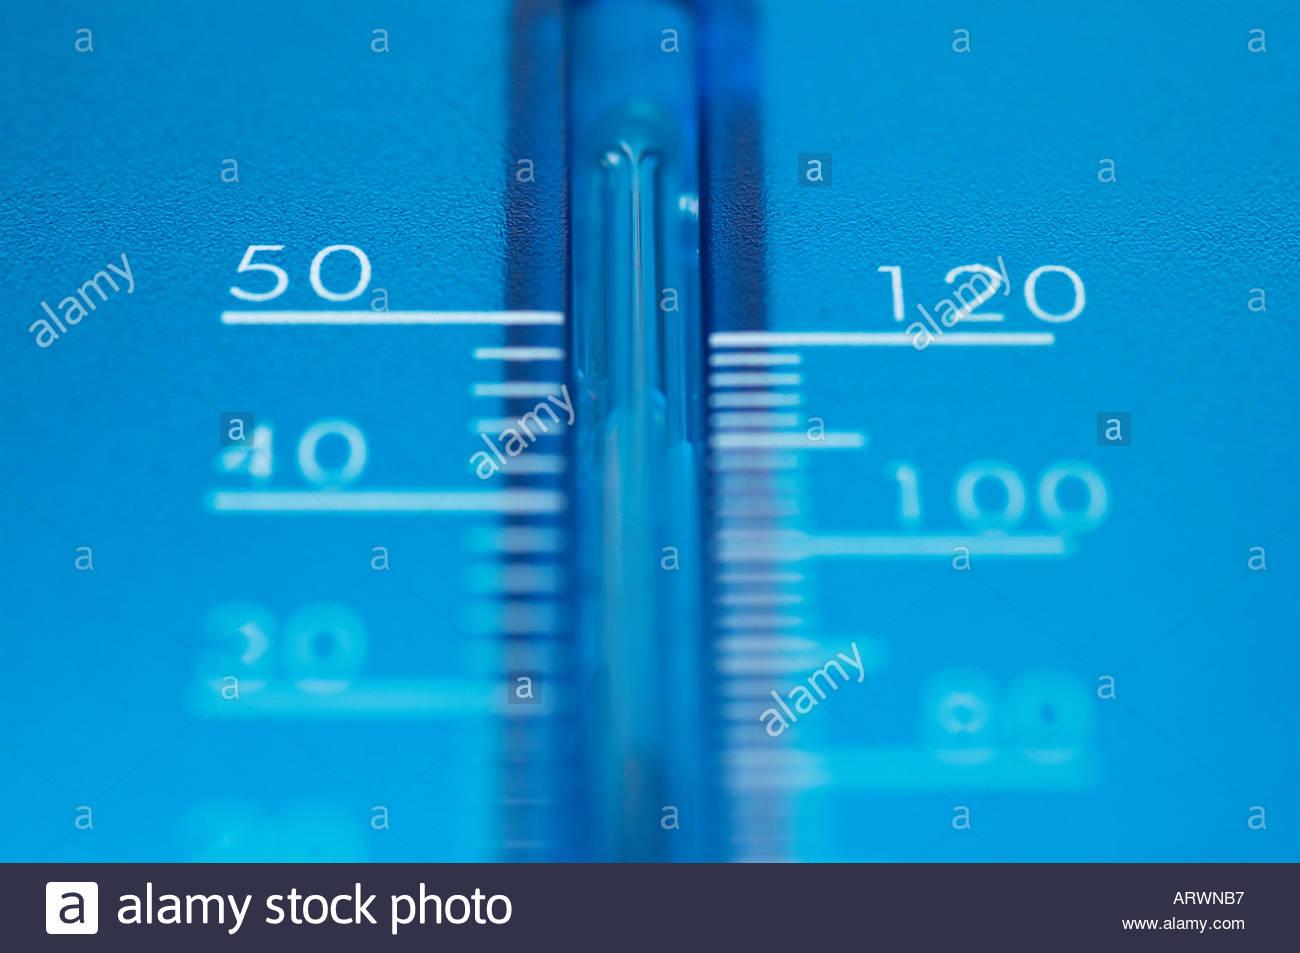 A clear blue thermometer - Stock Image